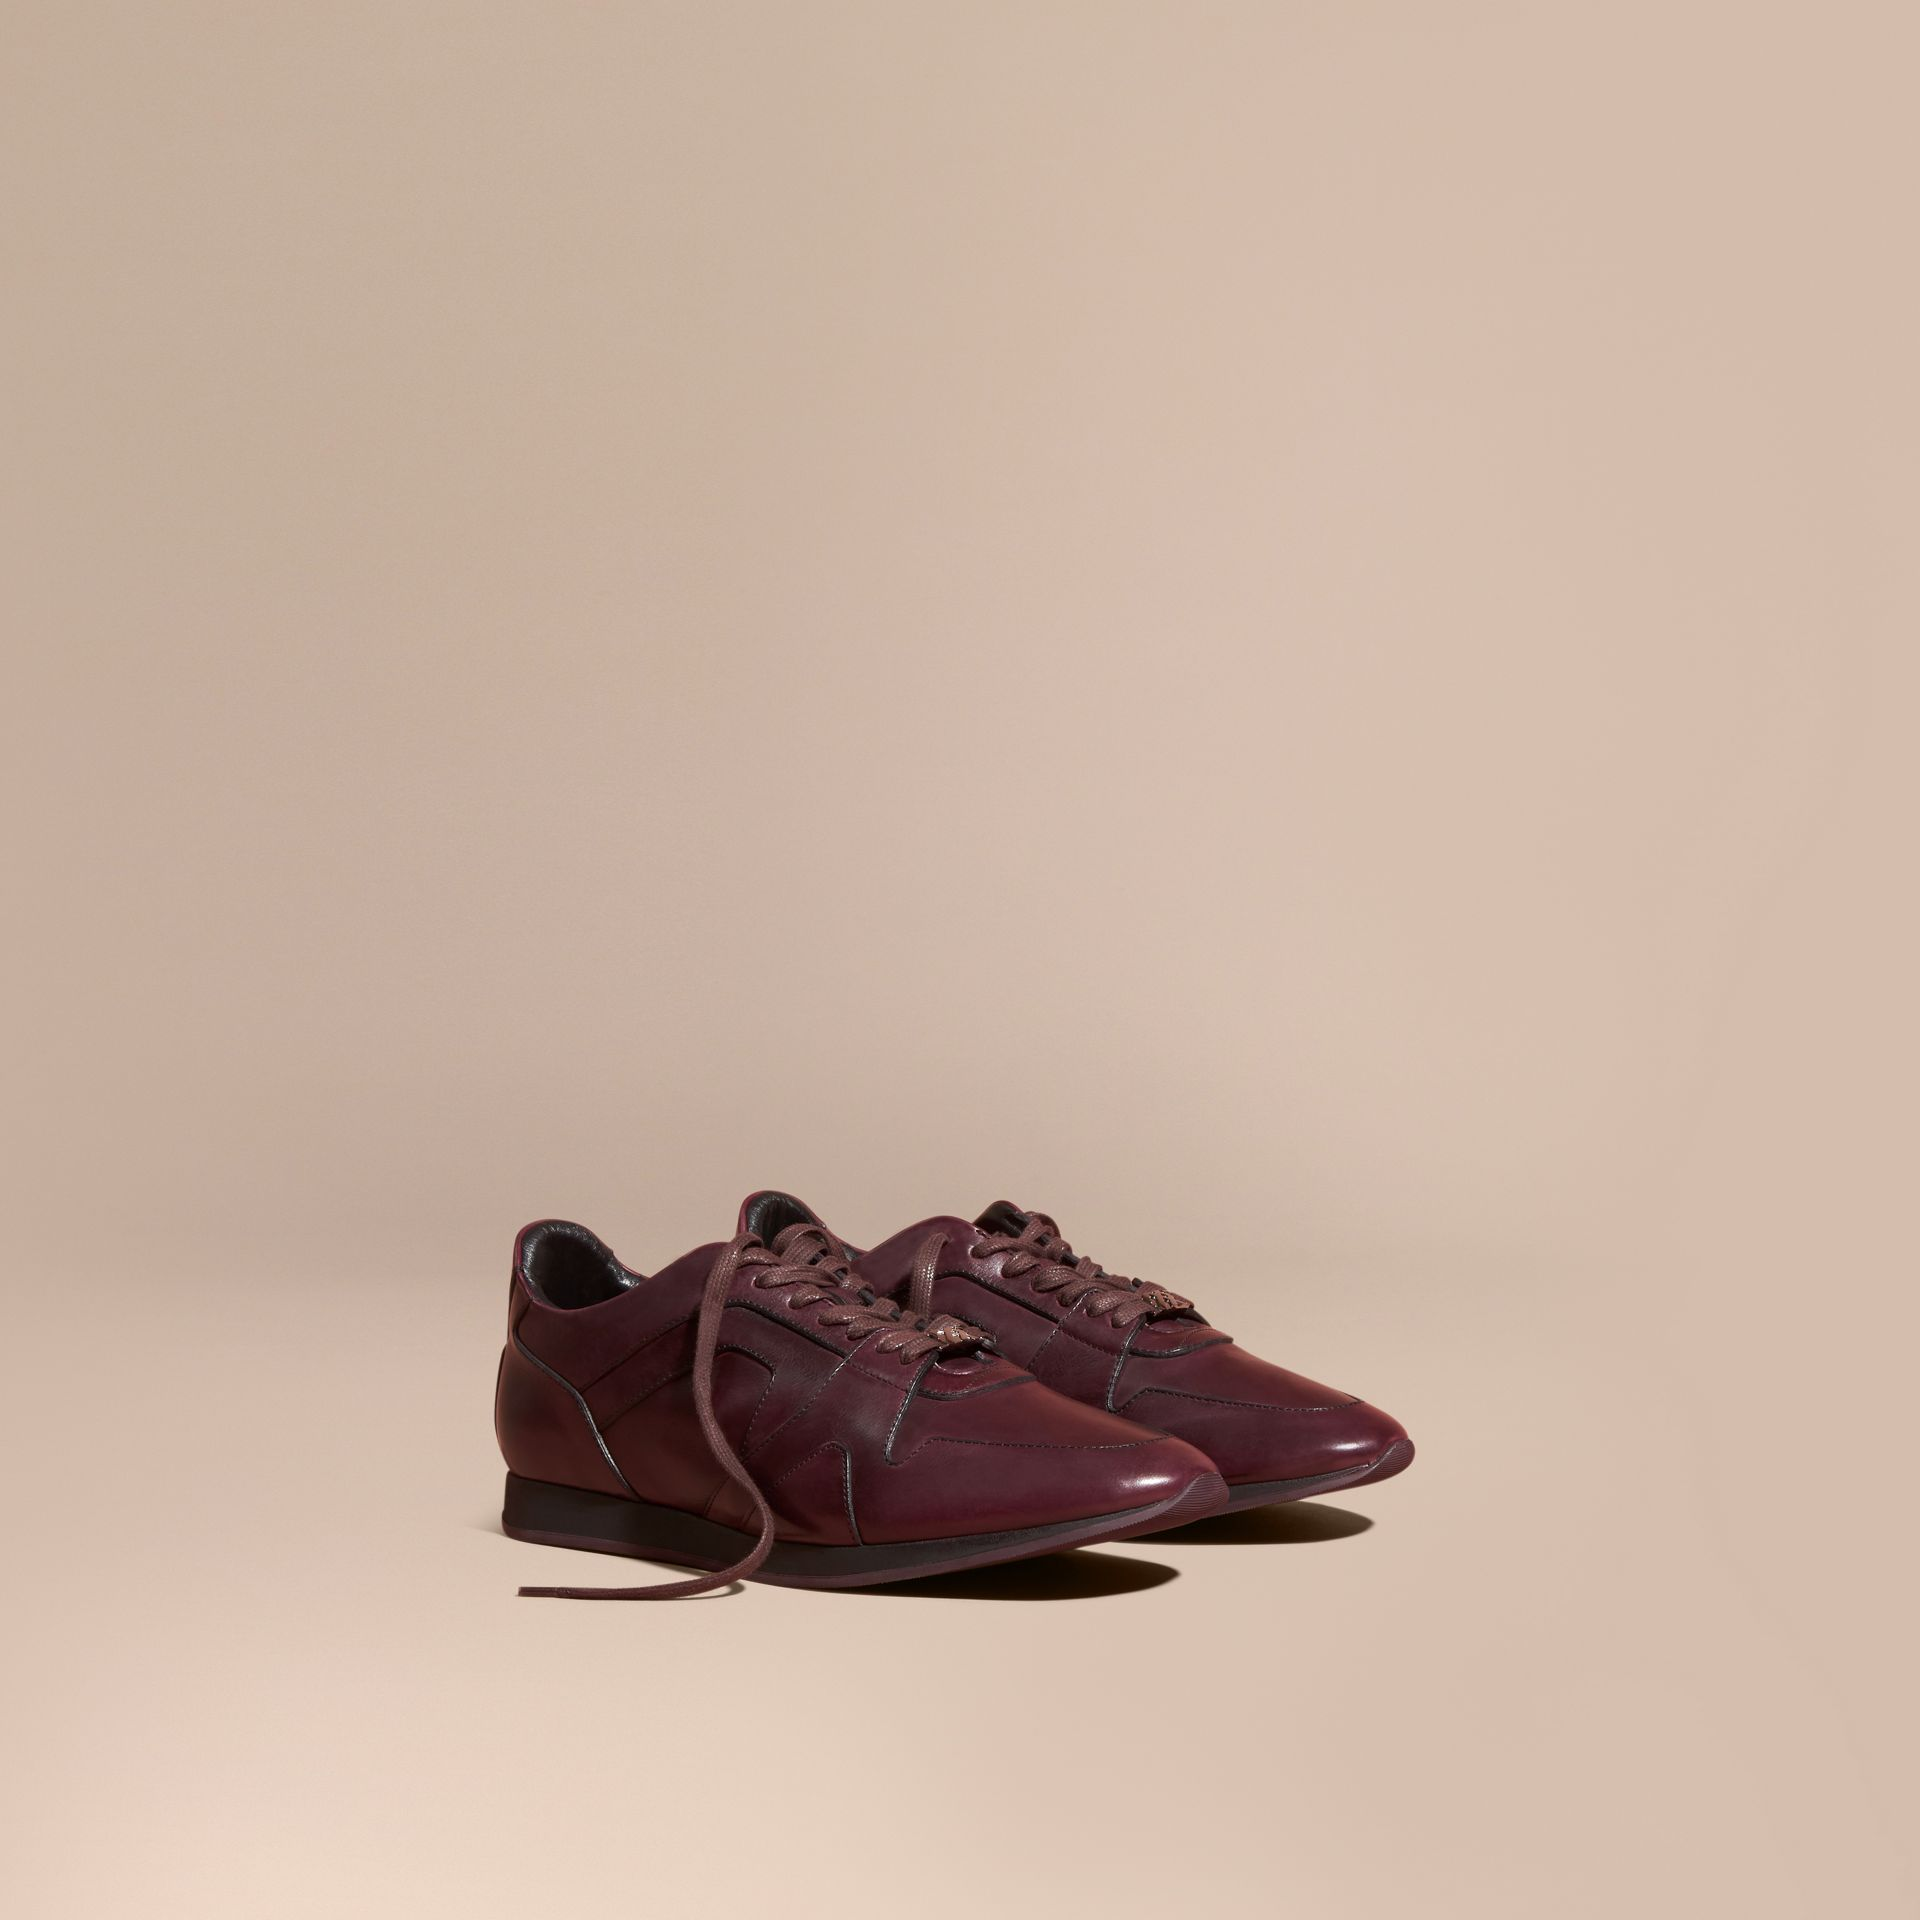 Elderberry The Field Sneaker in Leather Elderberry - gallery image 1